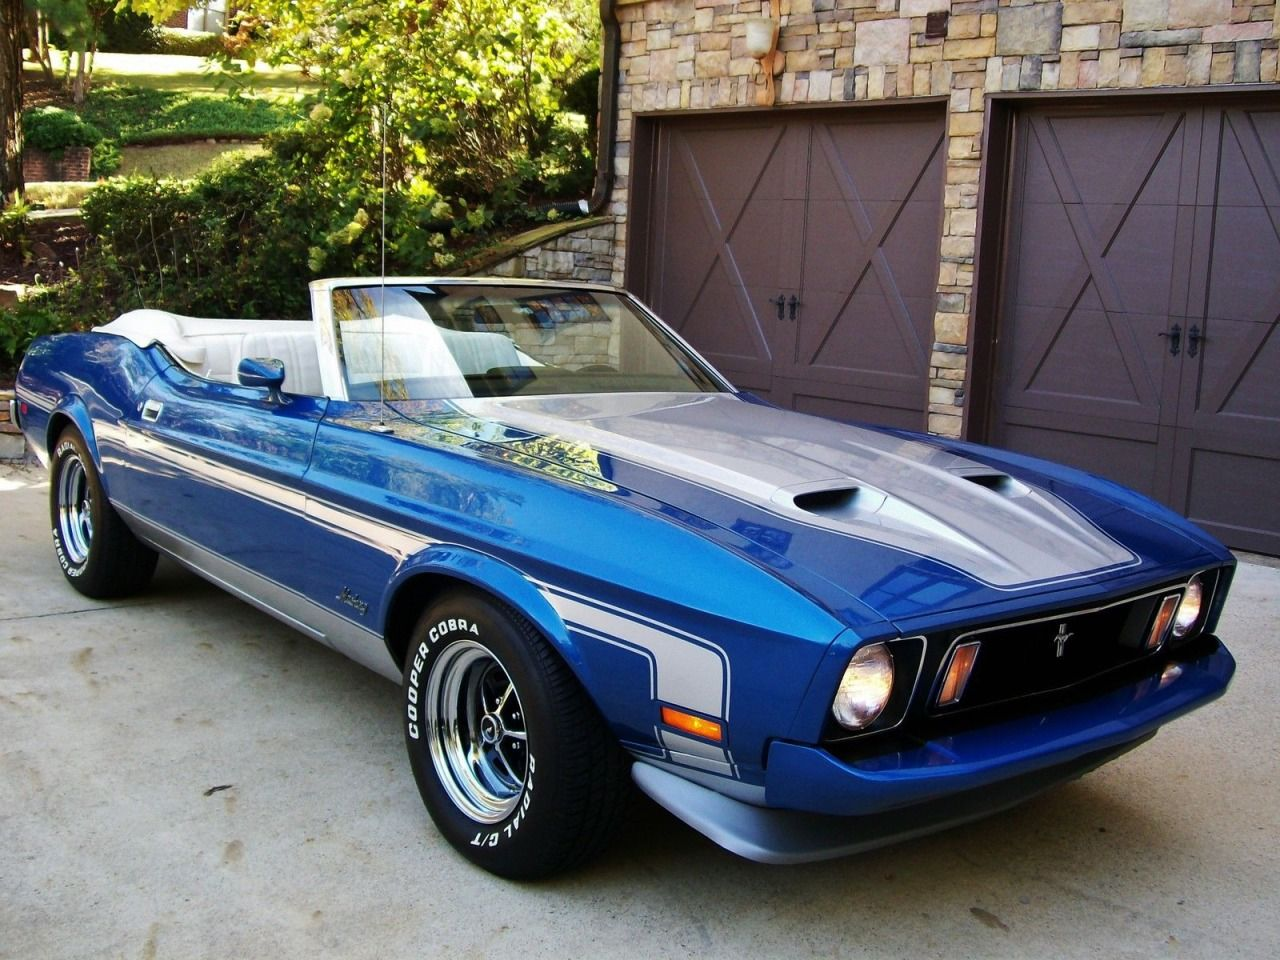 American Muscle Cars 1973 Ford Mustang Convertible Q Code 351